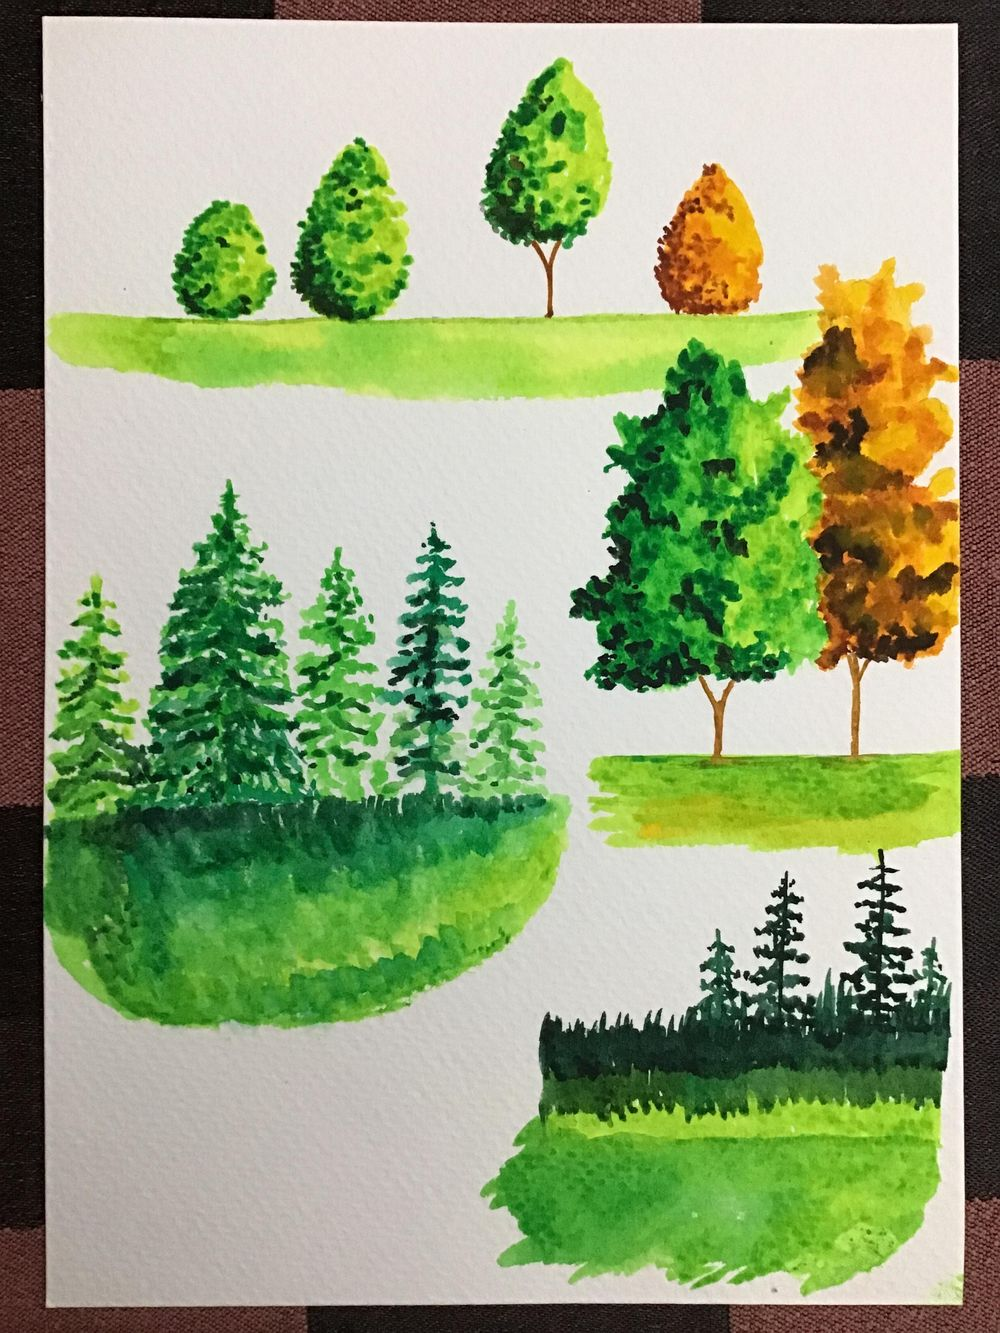 Amazing start to watercolour landscapes! - image 3 - student project